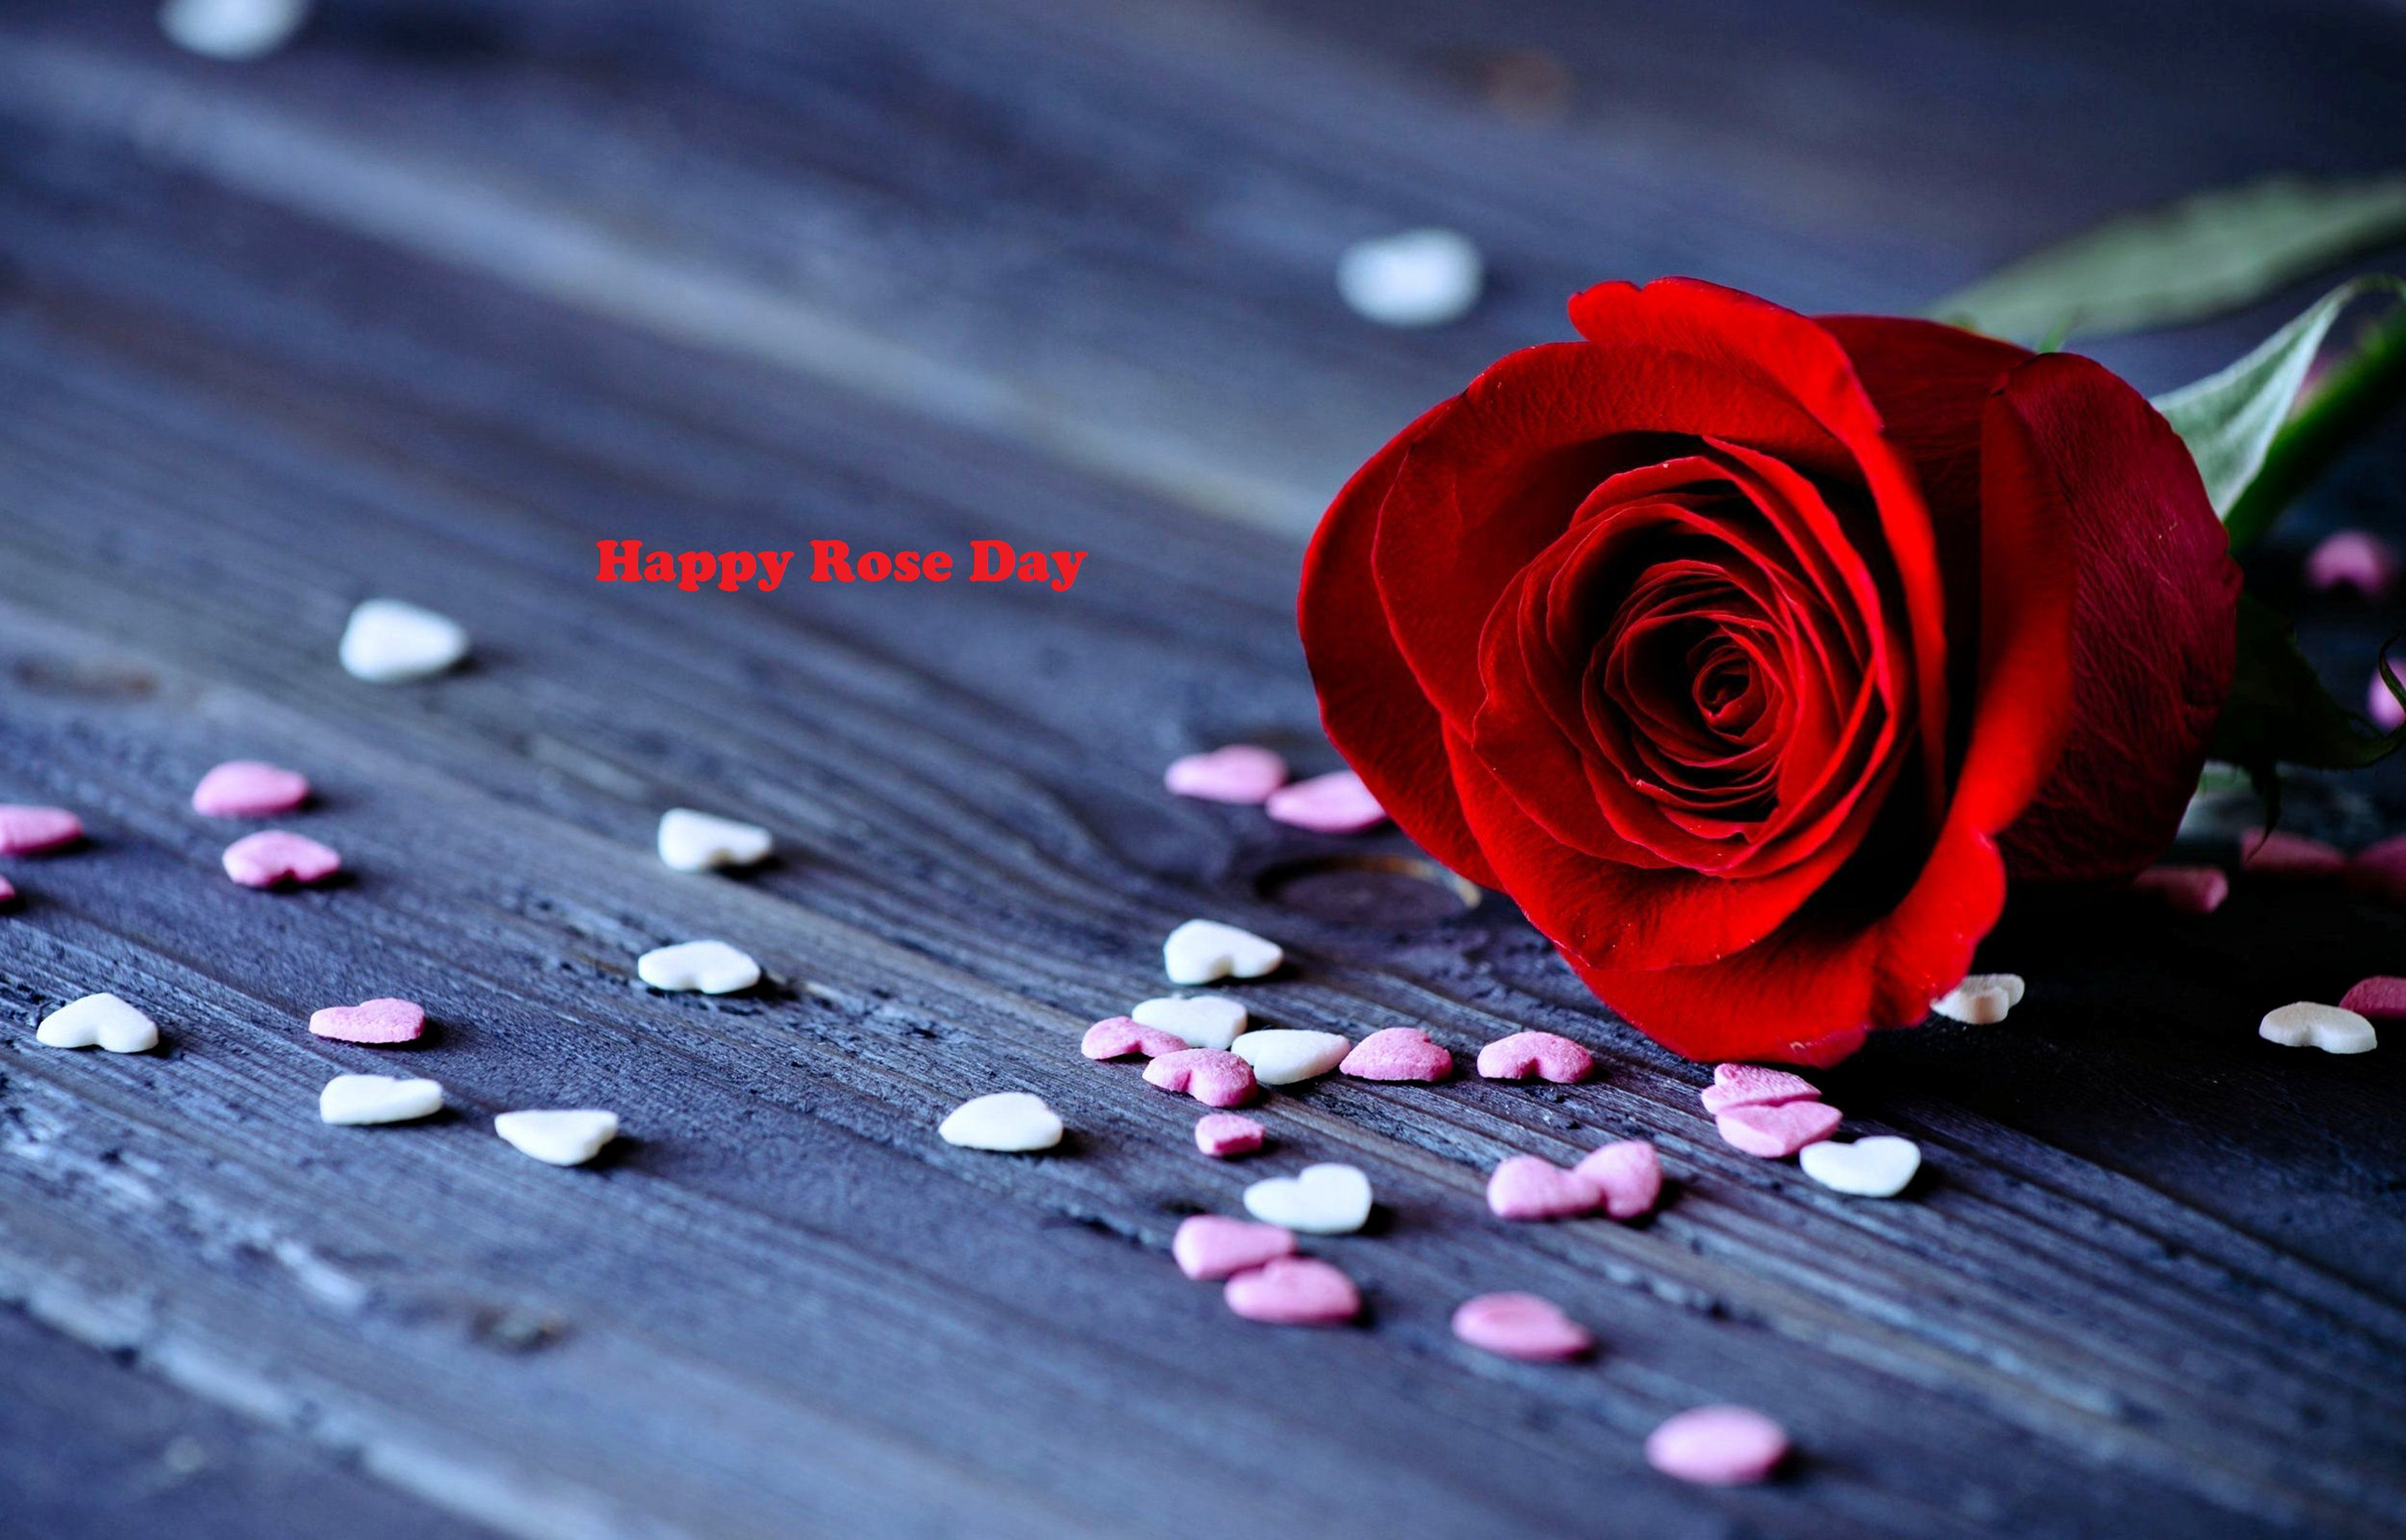 Happy Rose Day Pictures Rose Day Wallpapers Rose Day Hd Pics Free Download Rose Day Photos For Lo Good Night Flowers Good Night Wallpaper Rose Day Wallpaper